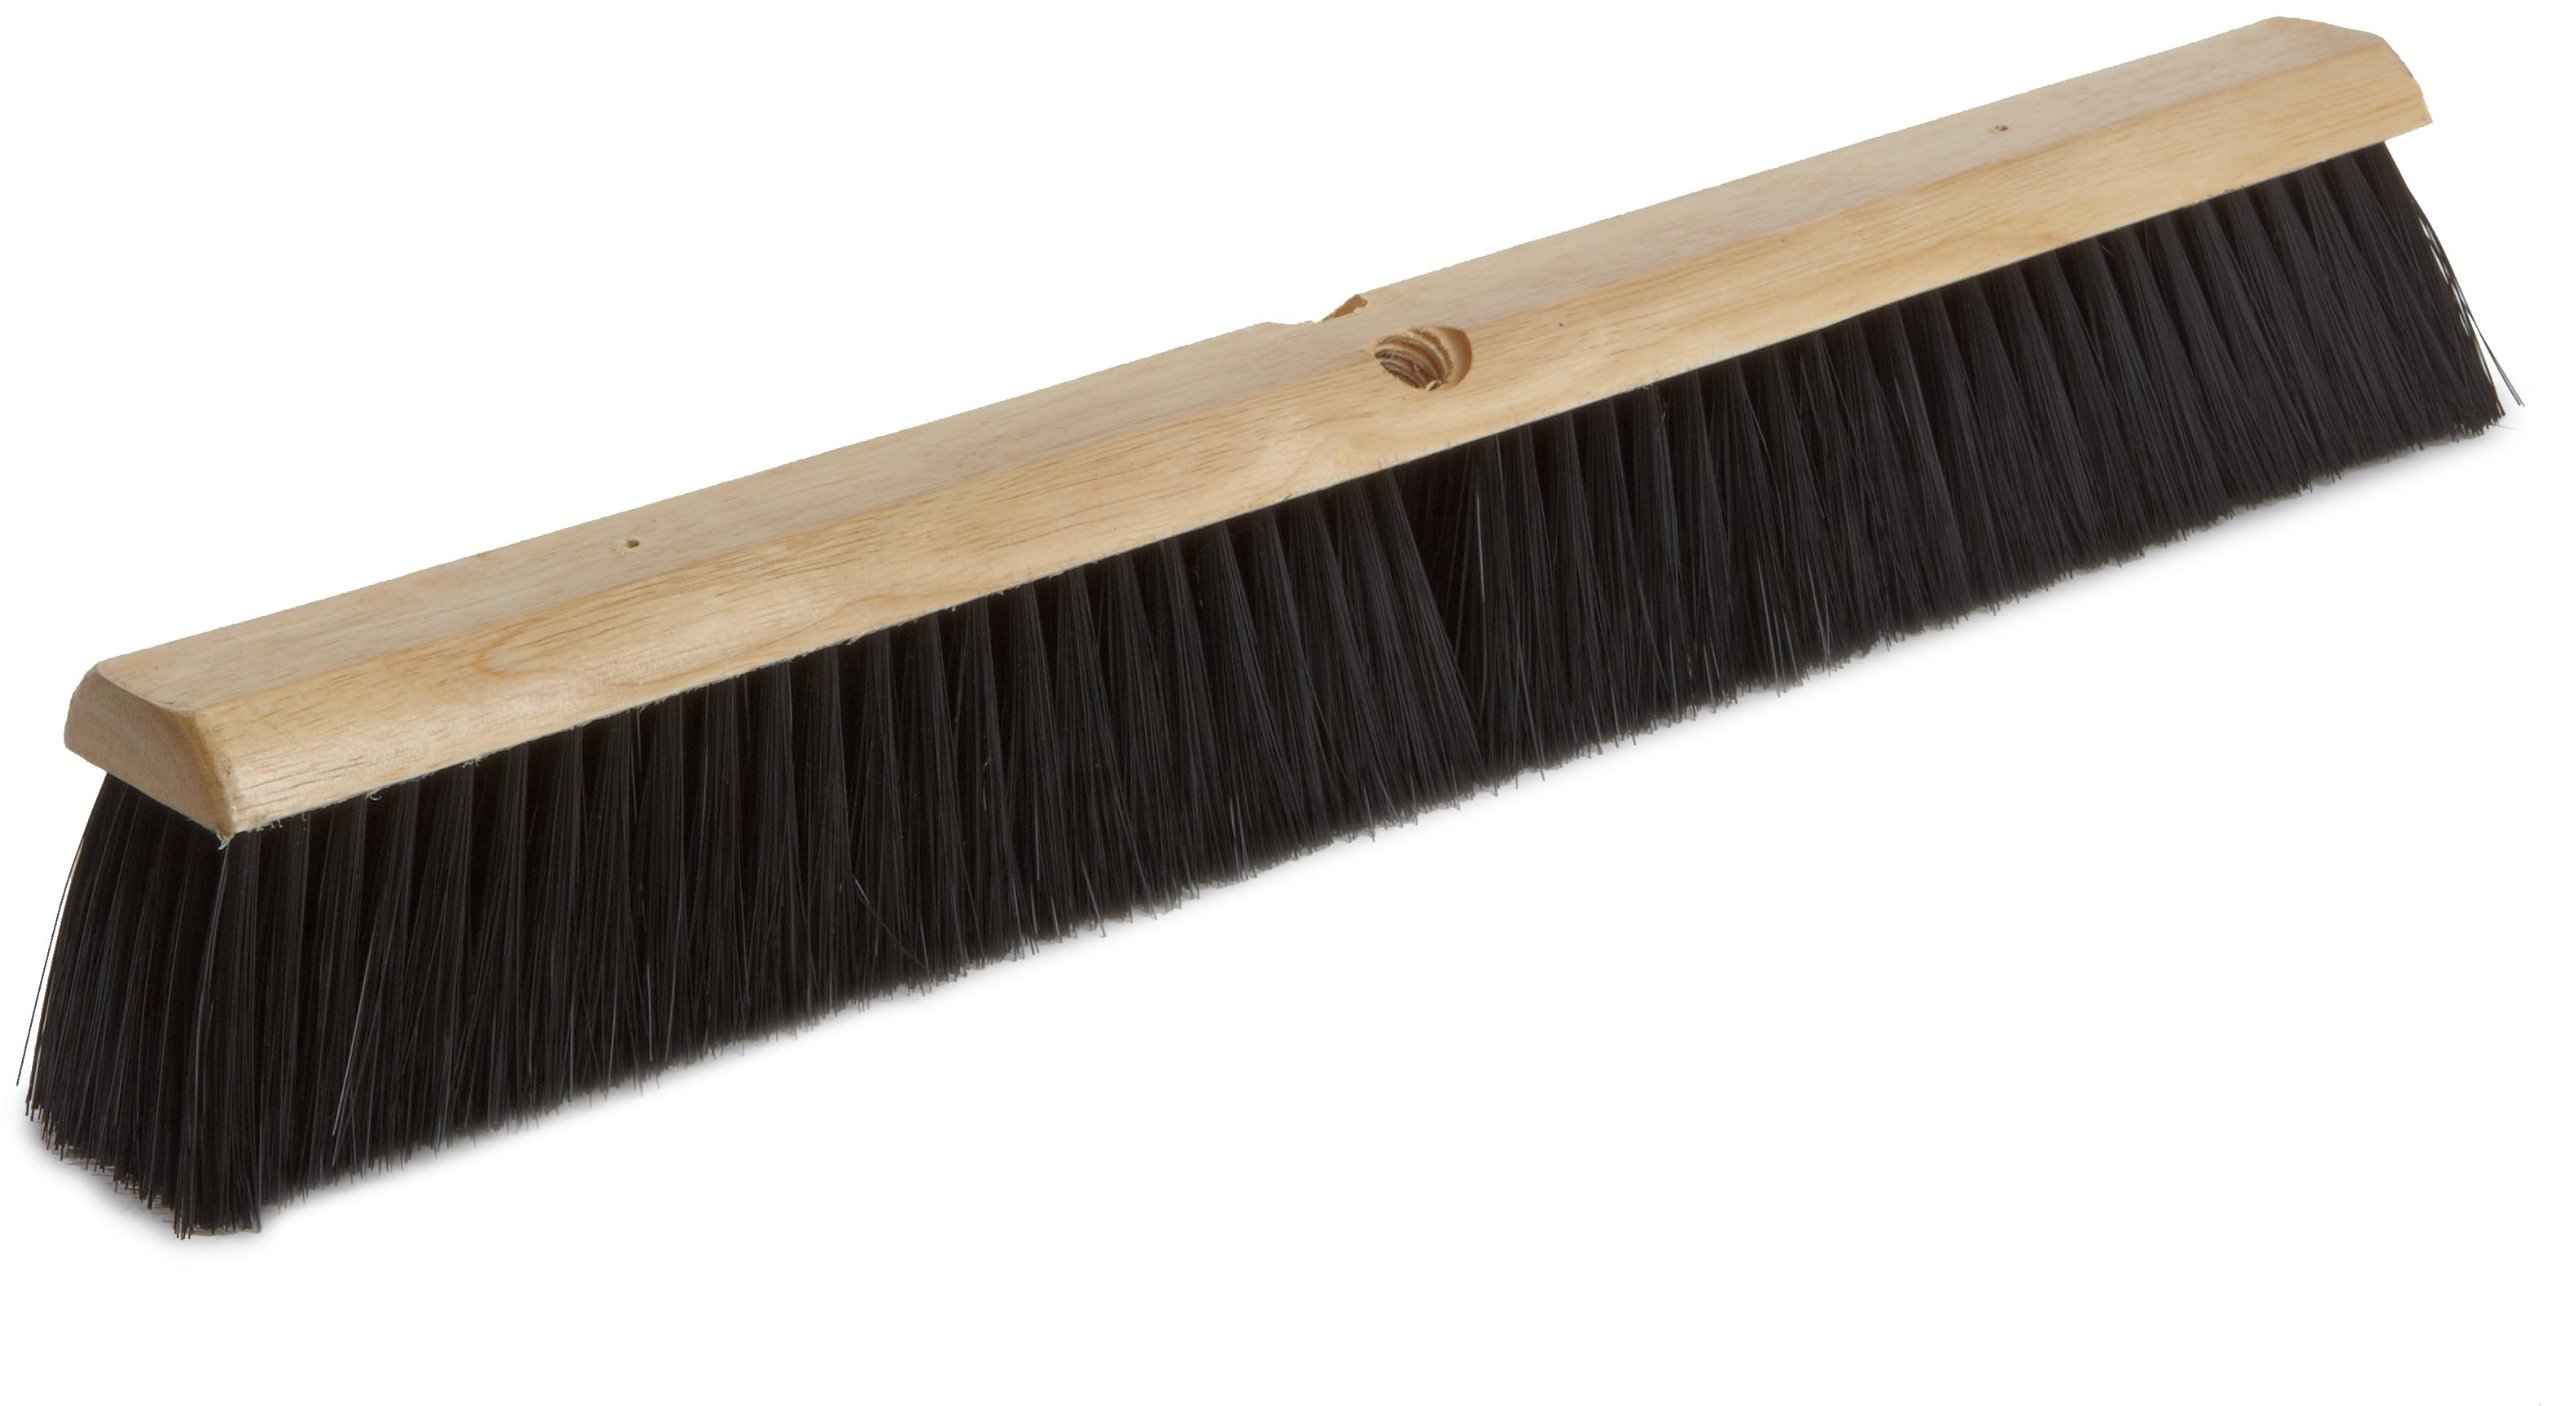 Magnolia Brush 2024 LH Line Floor Brush, Plastic Bristles, 3'' Trim, 24'' Length, Black (Case of 12)